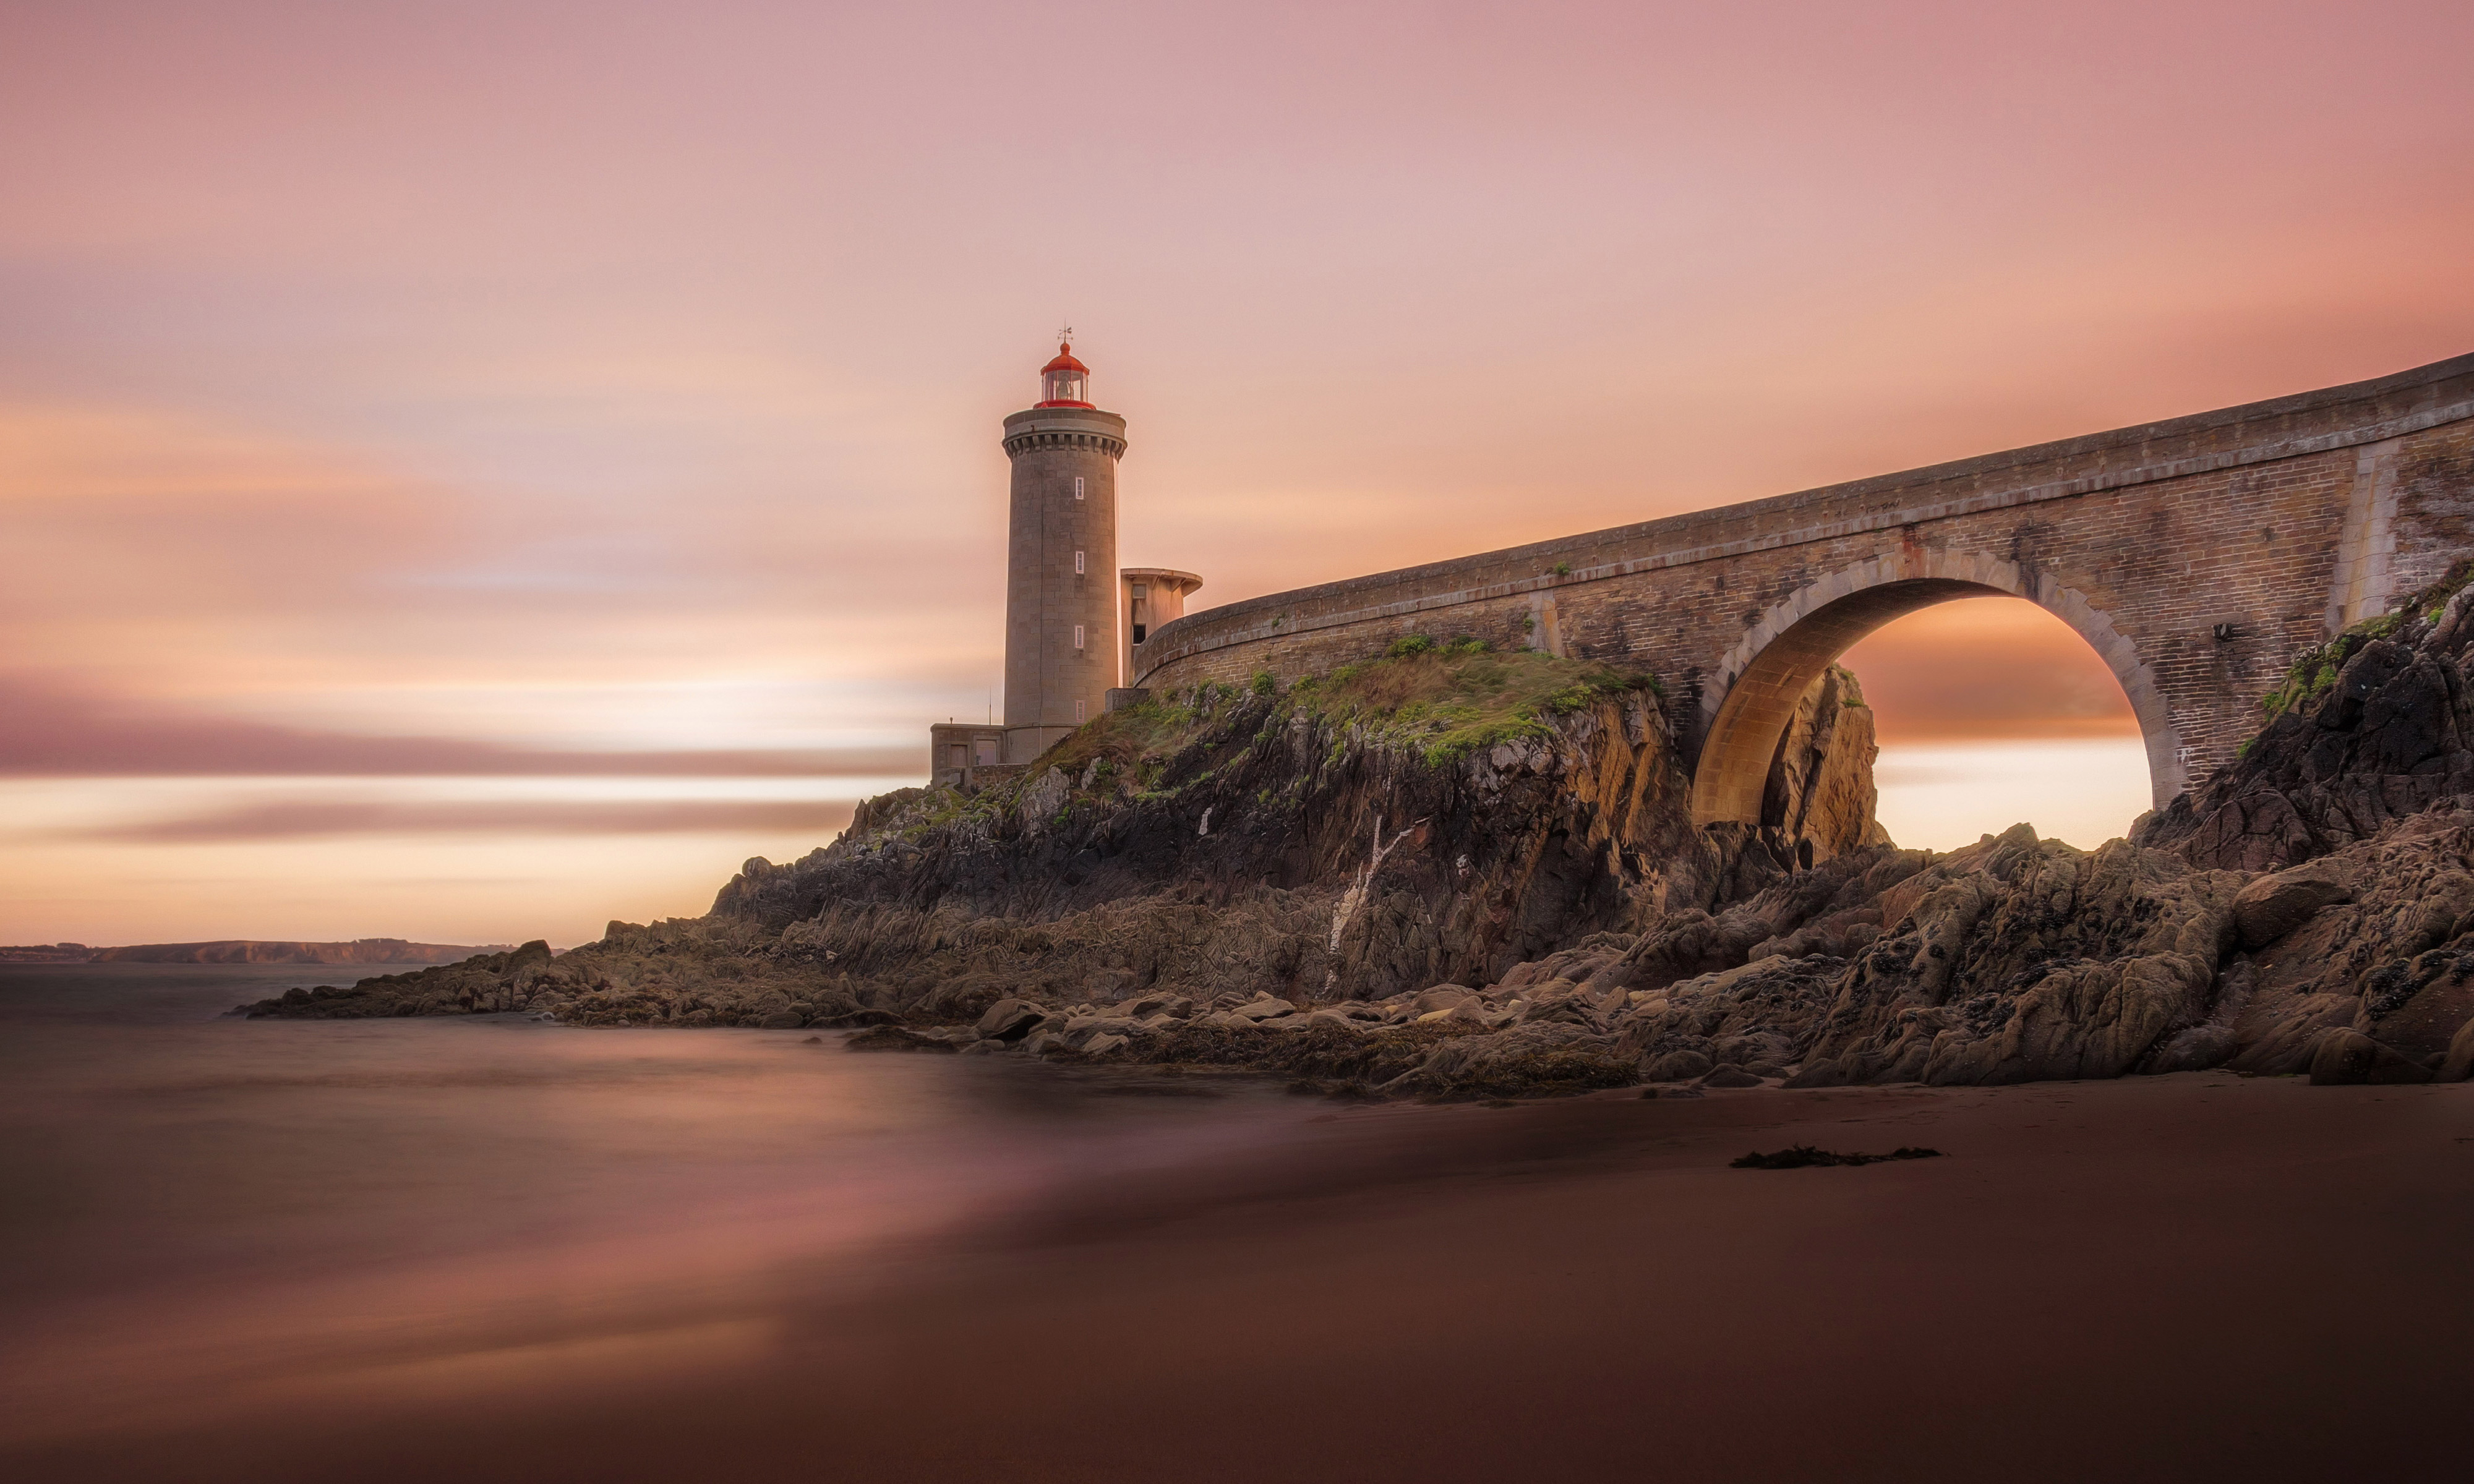 4k lighthouse bridge background wallpaper 65377